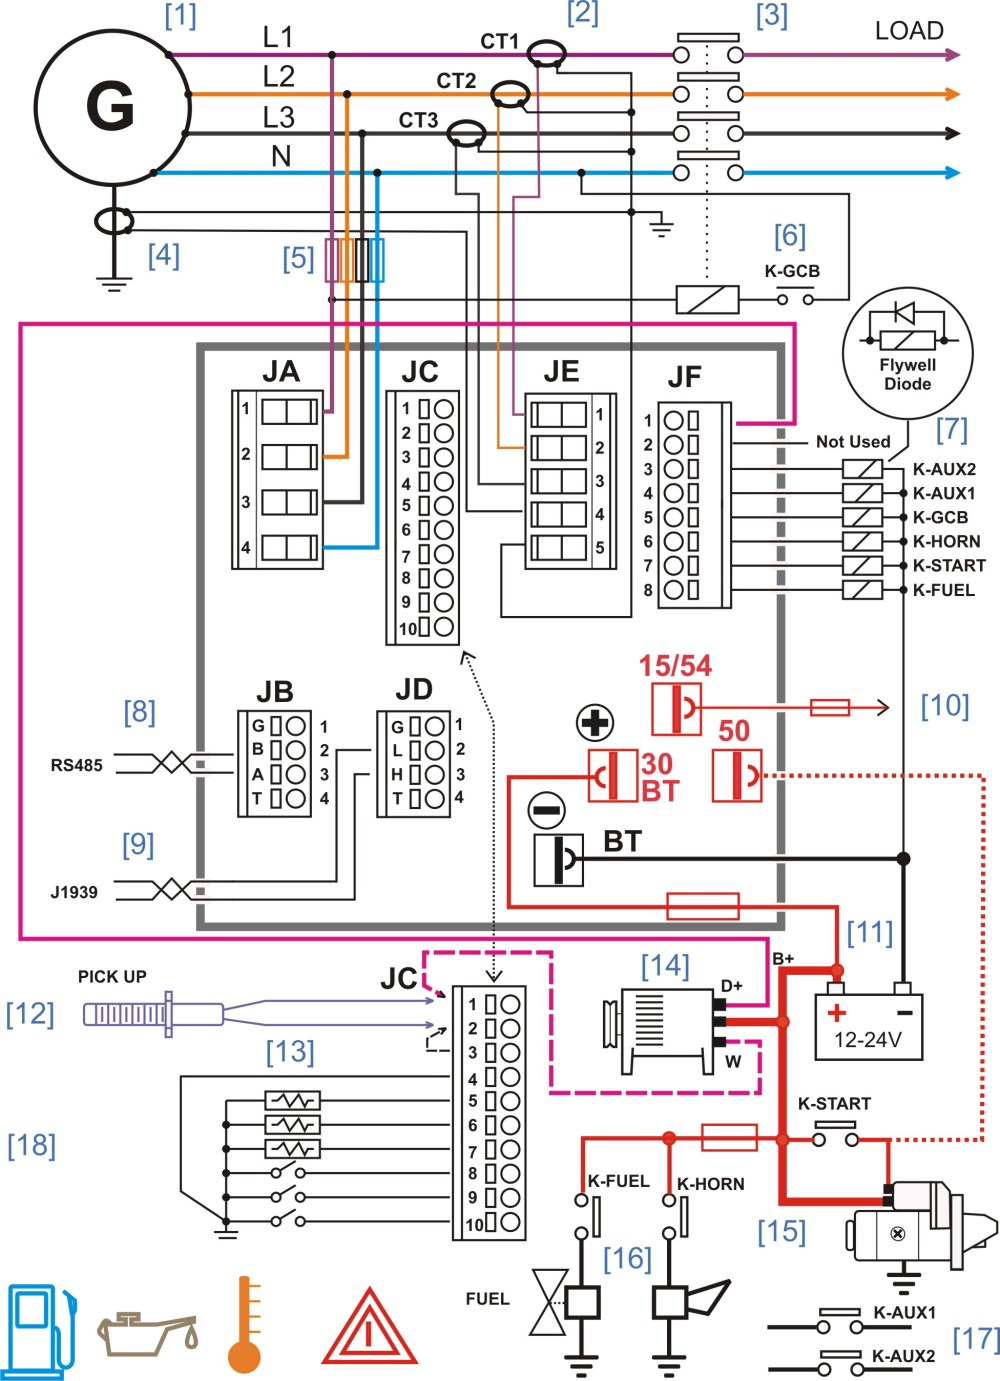 medium resolution of 10 wire generator wiring diagram wiring library10 wire generator wiring diagram